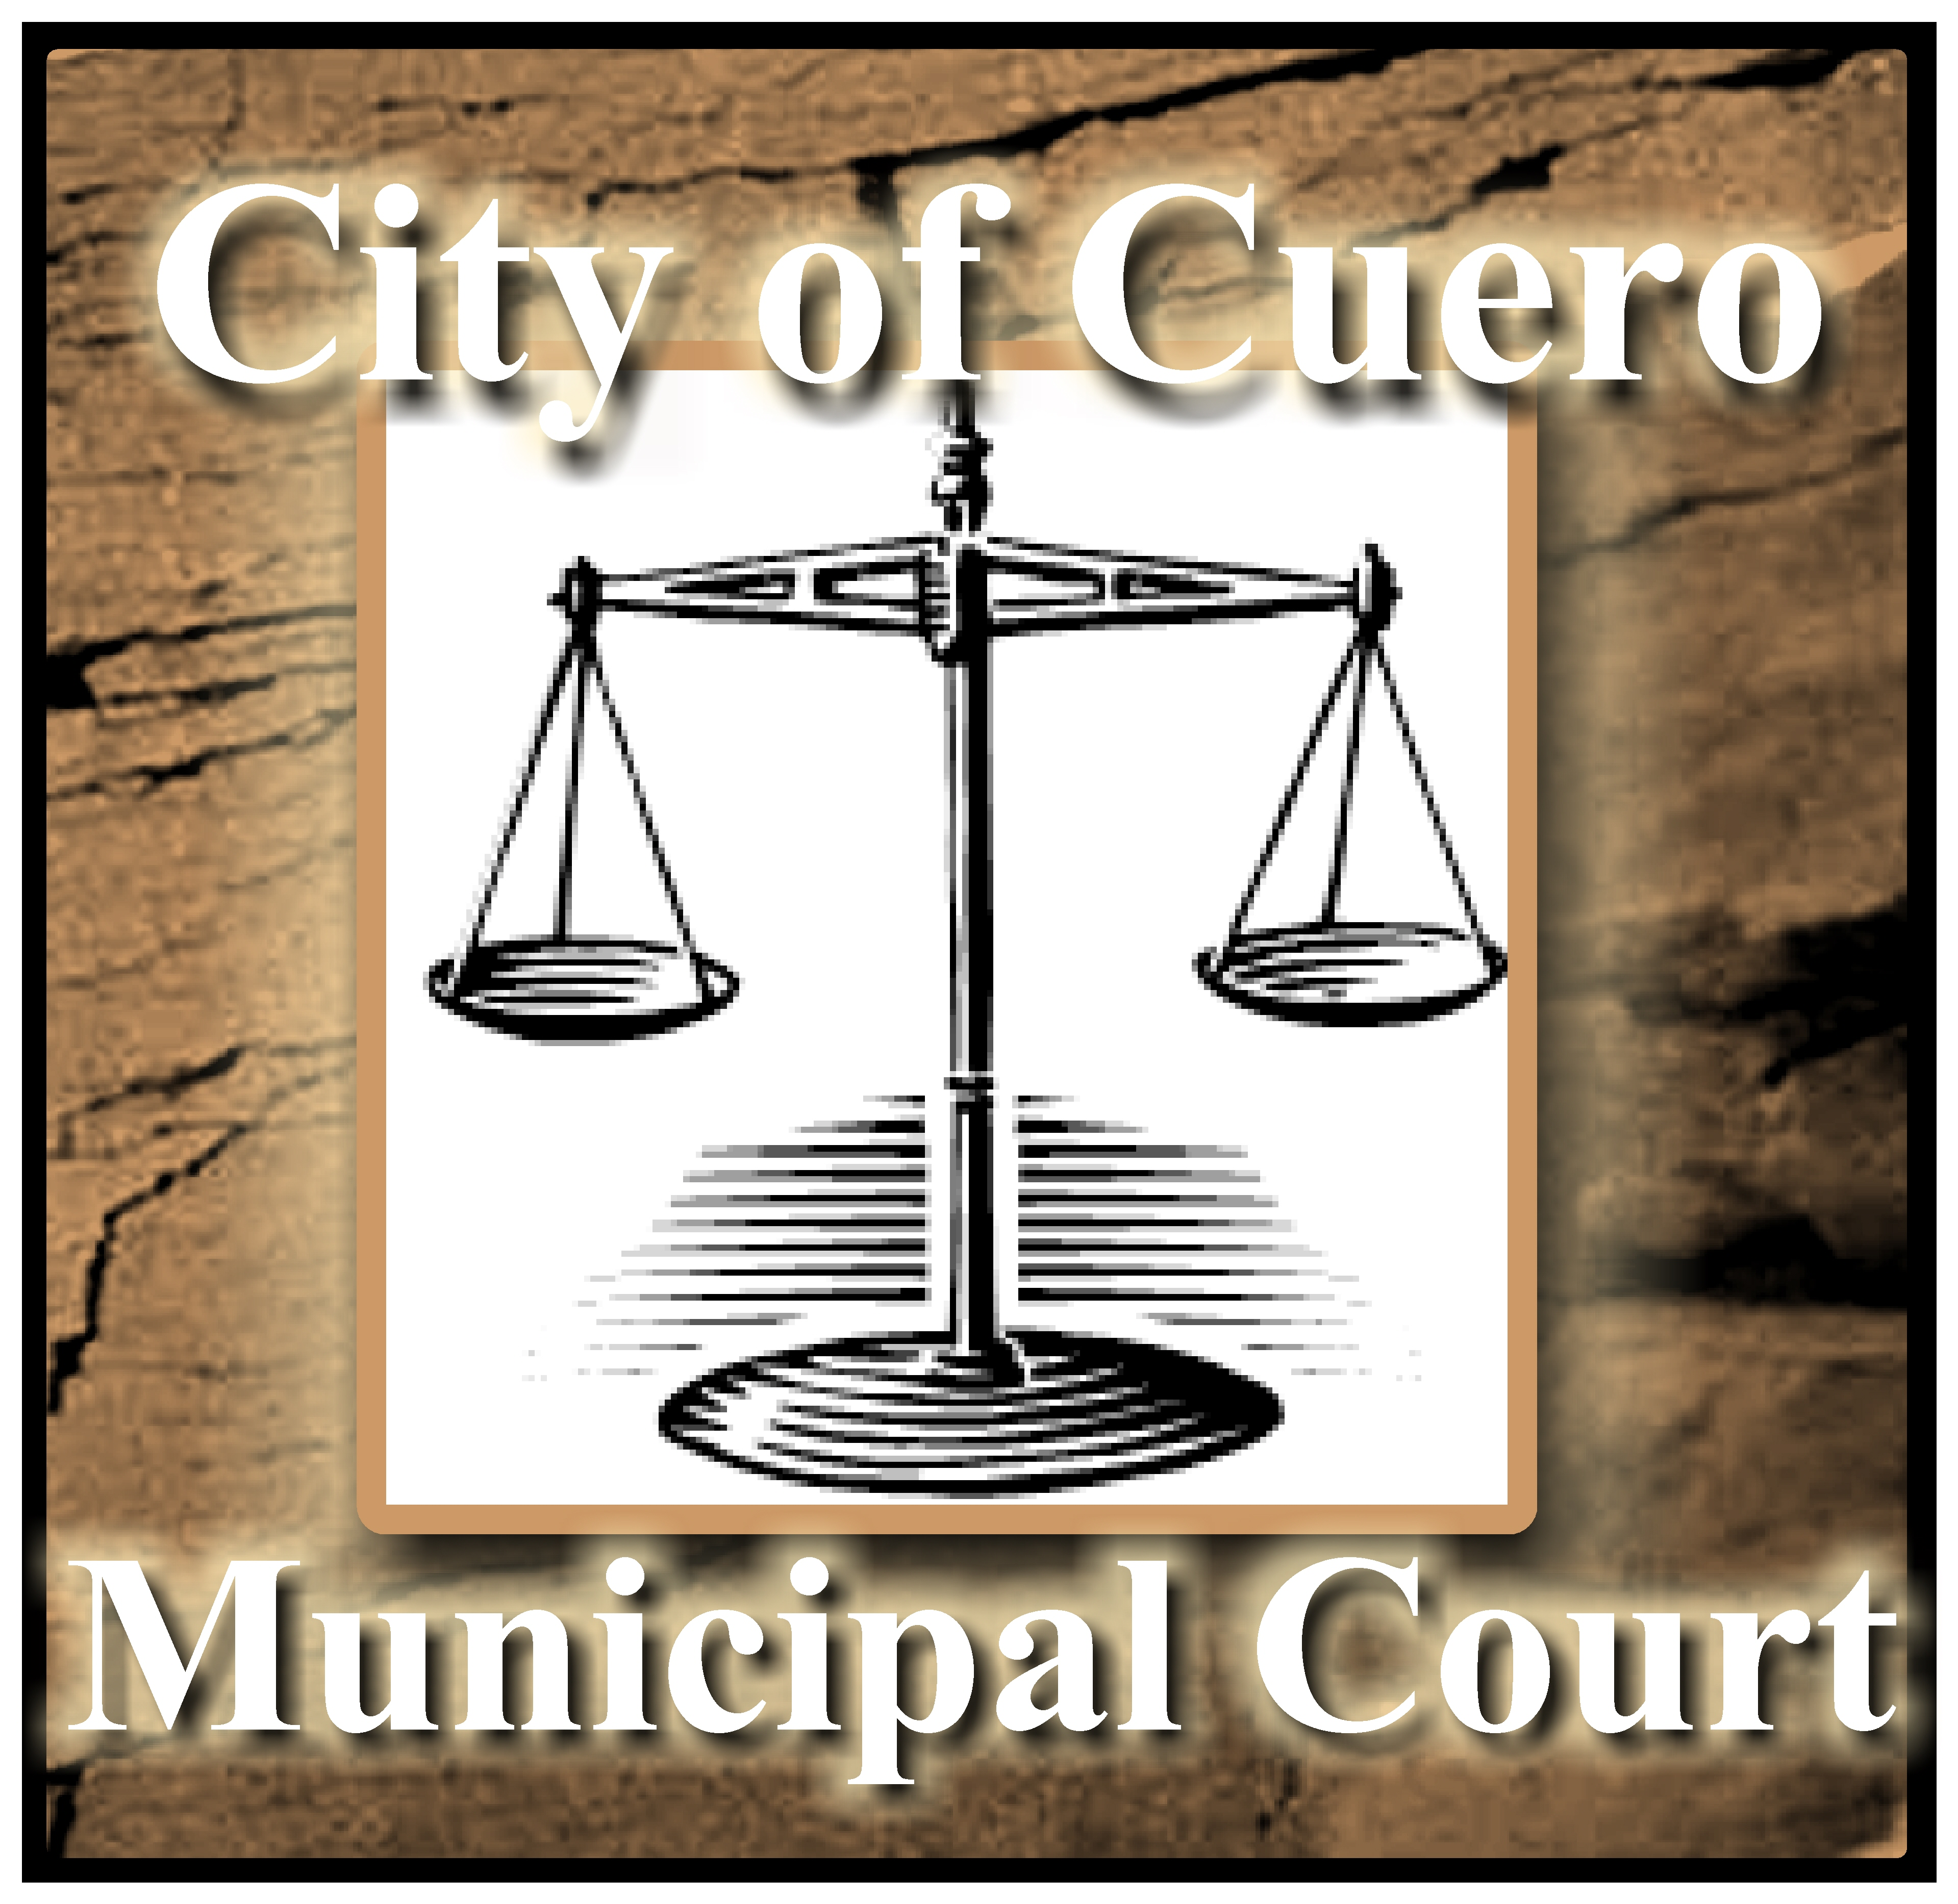 Municipal Court Photo Web.jpg